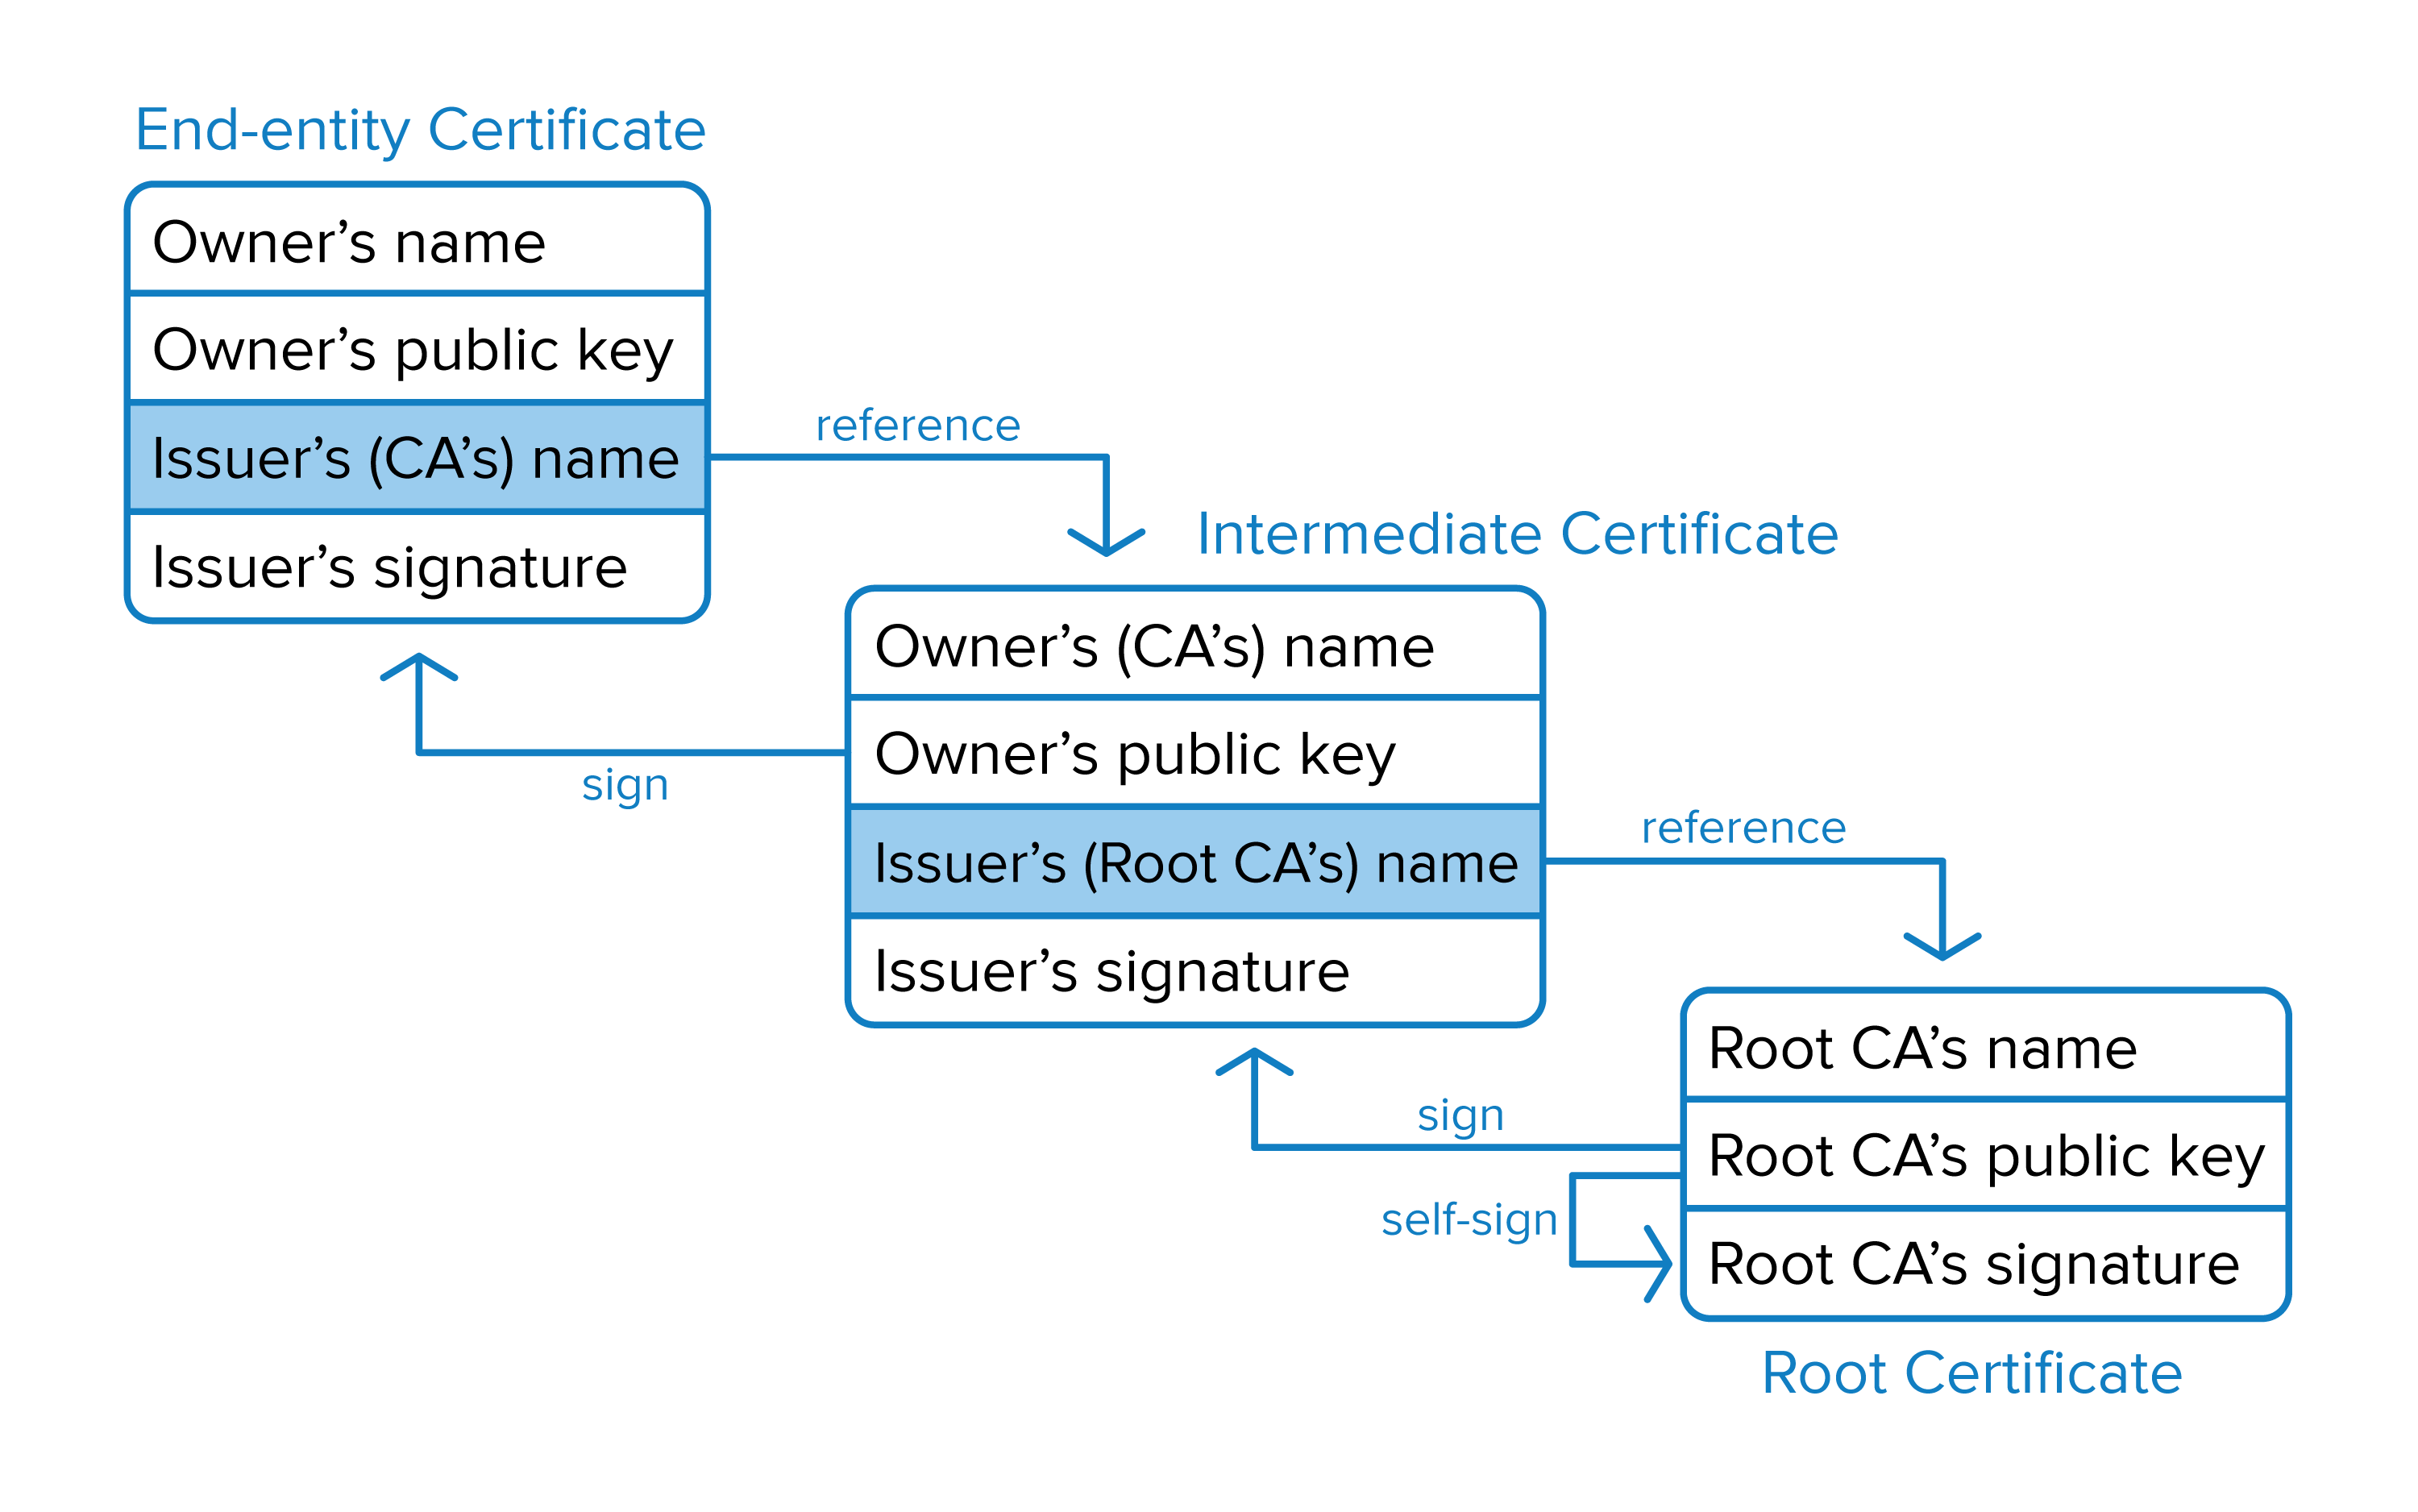 Illustrating the chain of trust from a root CA through an intermediate certificate